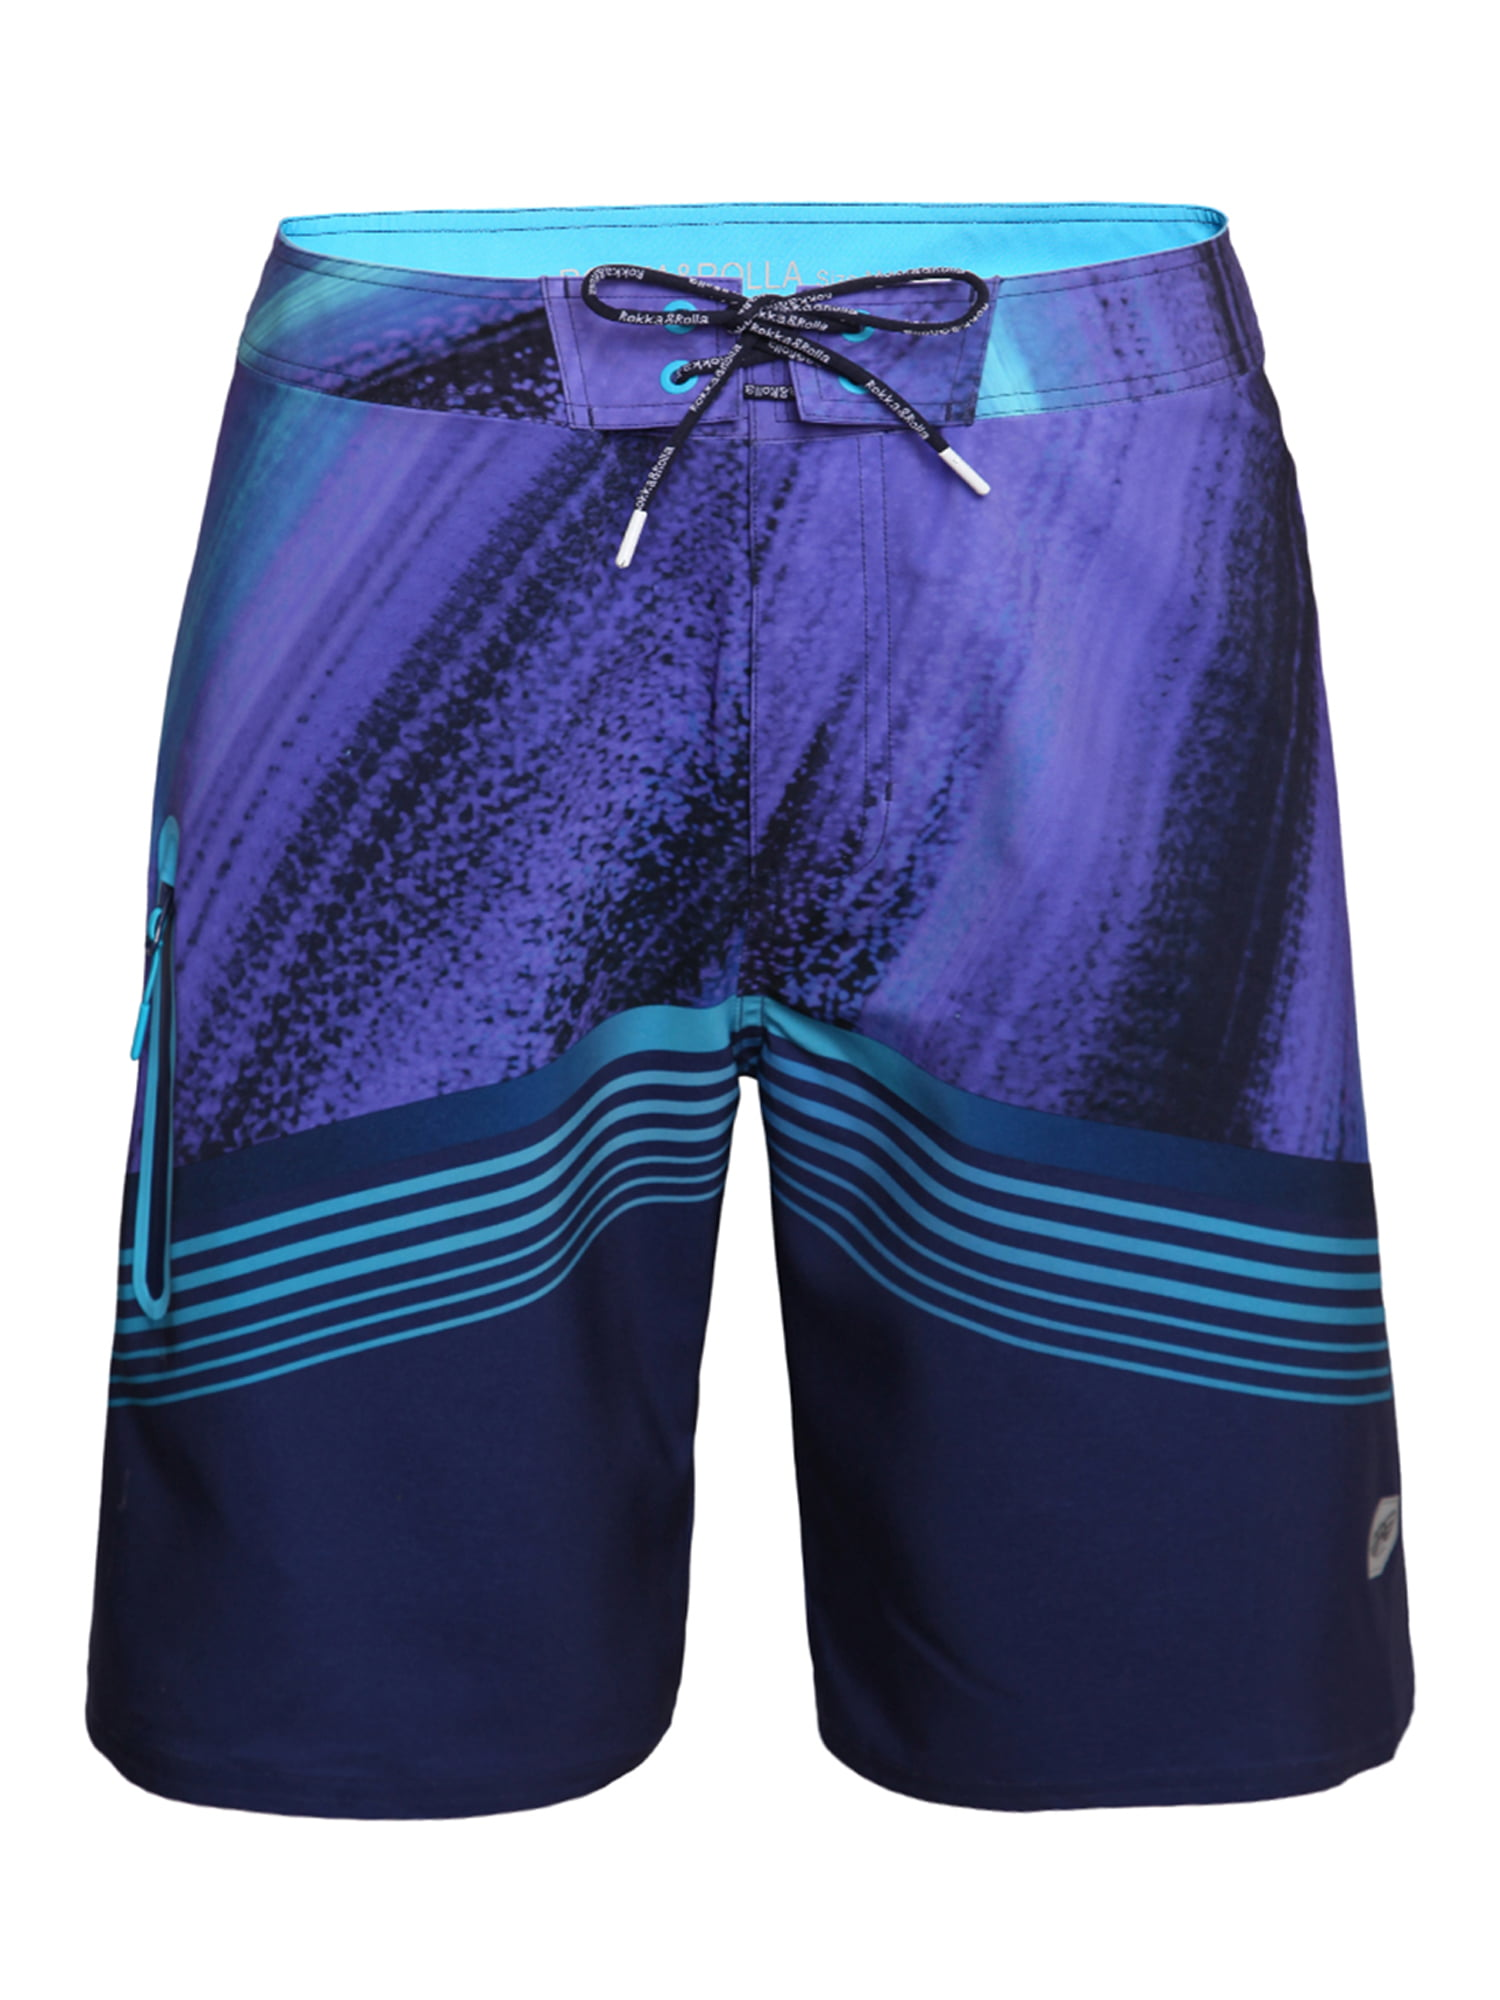 Fantasy Purple Cat Mens Swim Trunks Quick Dry Bathing Suits Summer Casual Surfing Board Shorts